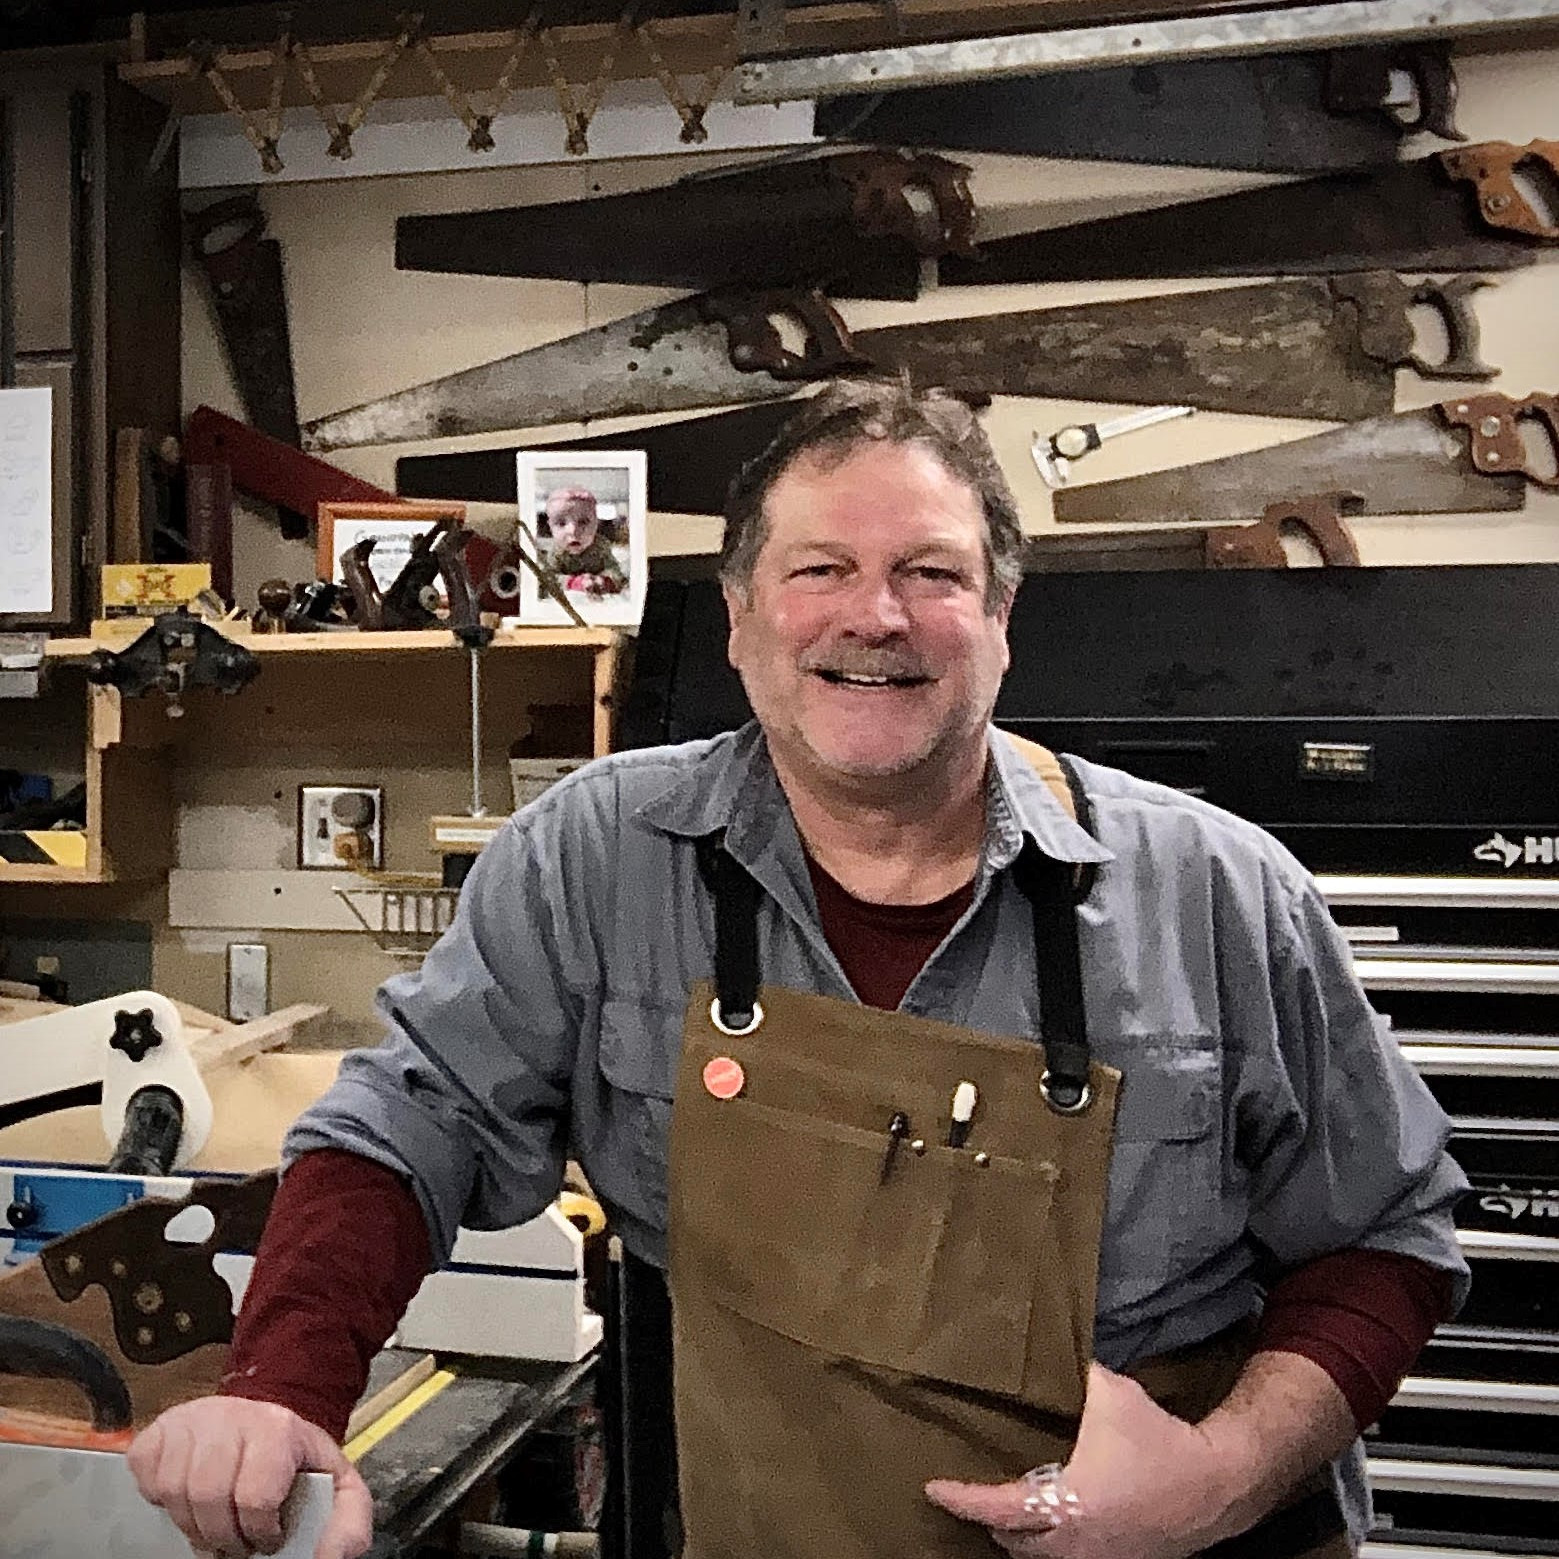 Al in his workshop